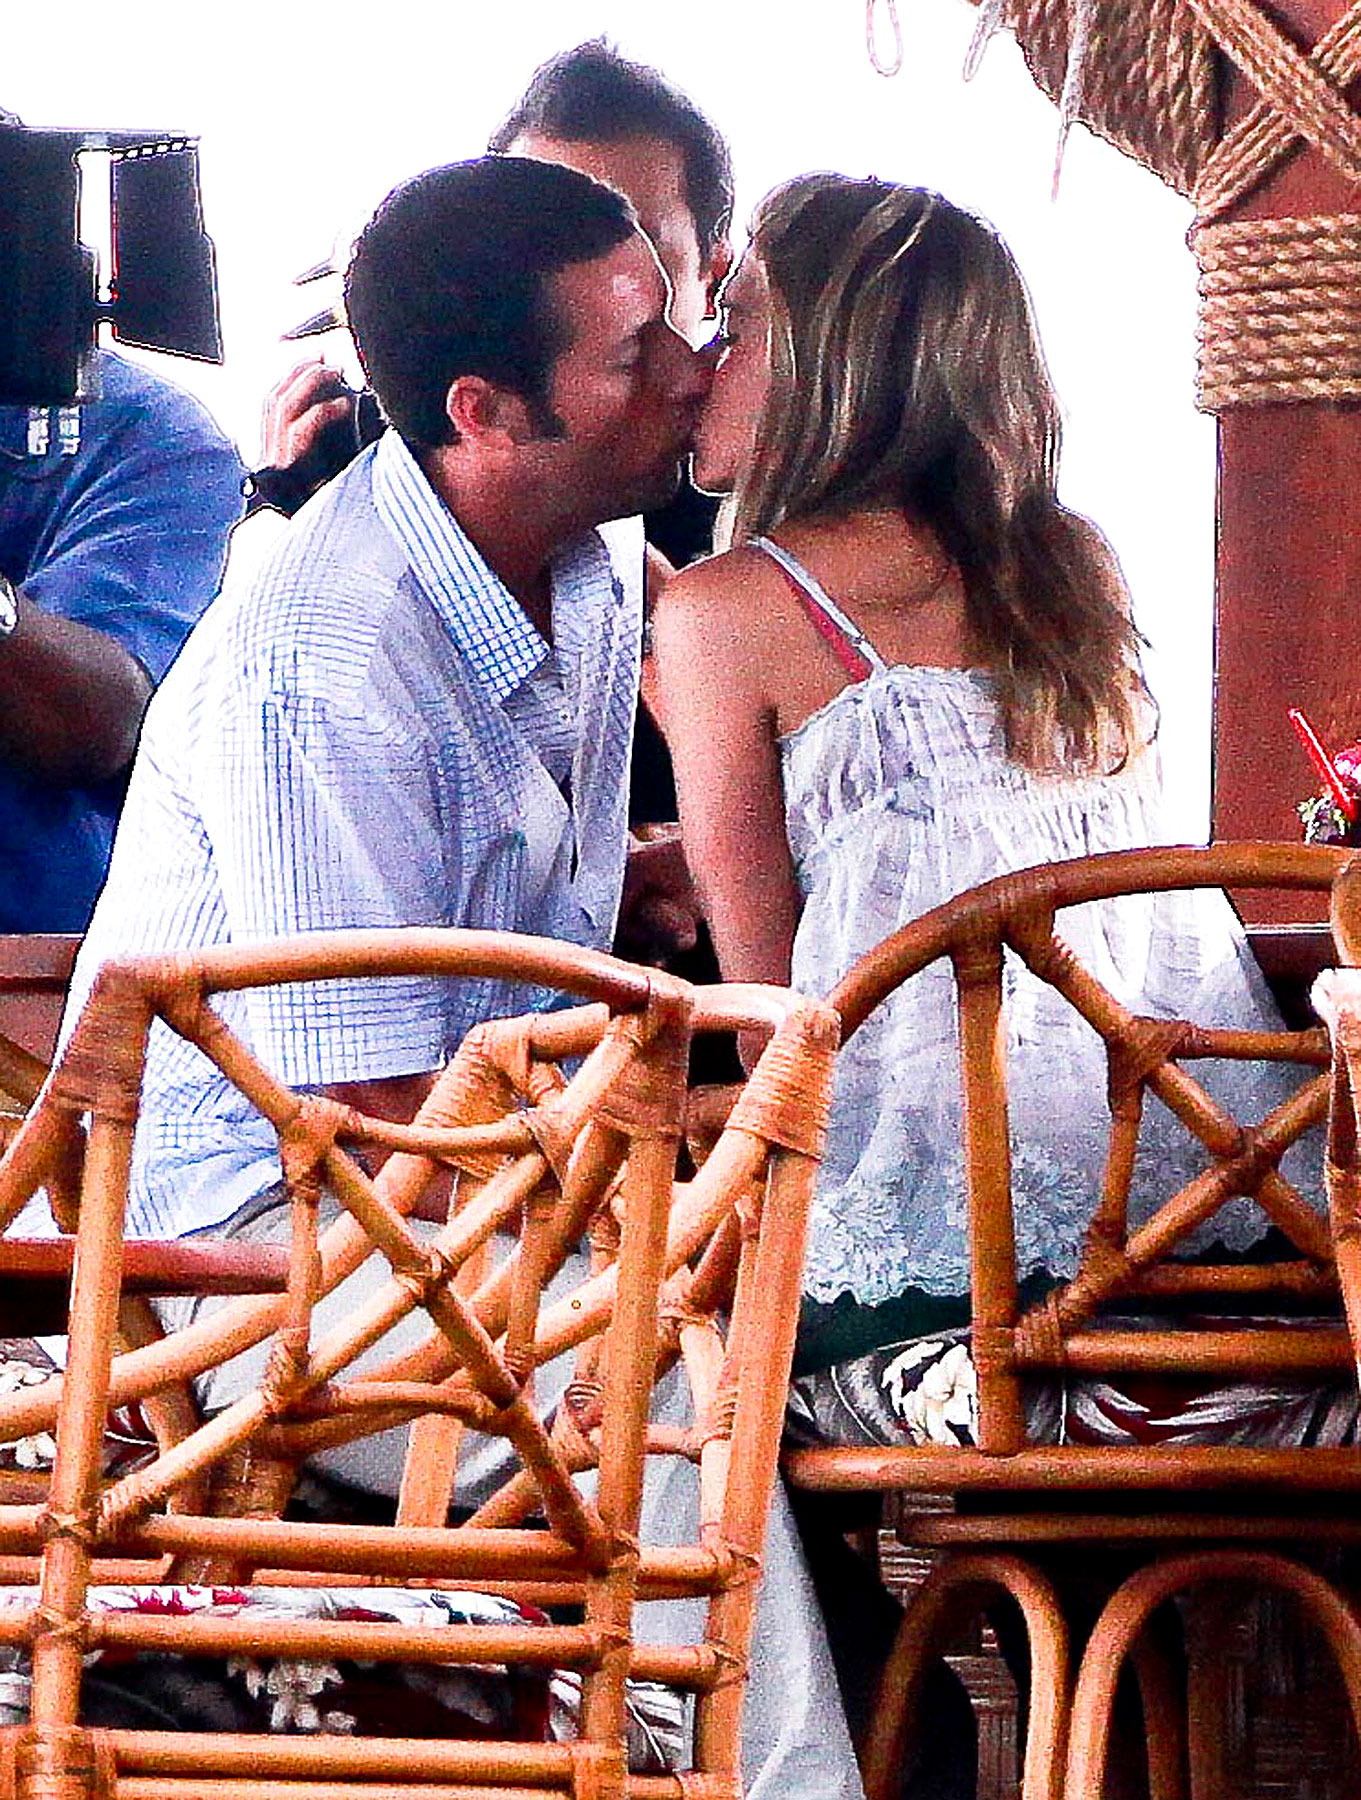 Jennifer Aniston And Adam Sandler Bring Us The Most Anticpiated Kiss Of 1997 (PHOTOS)